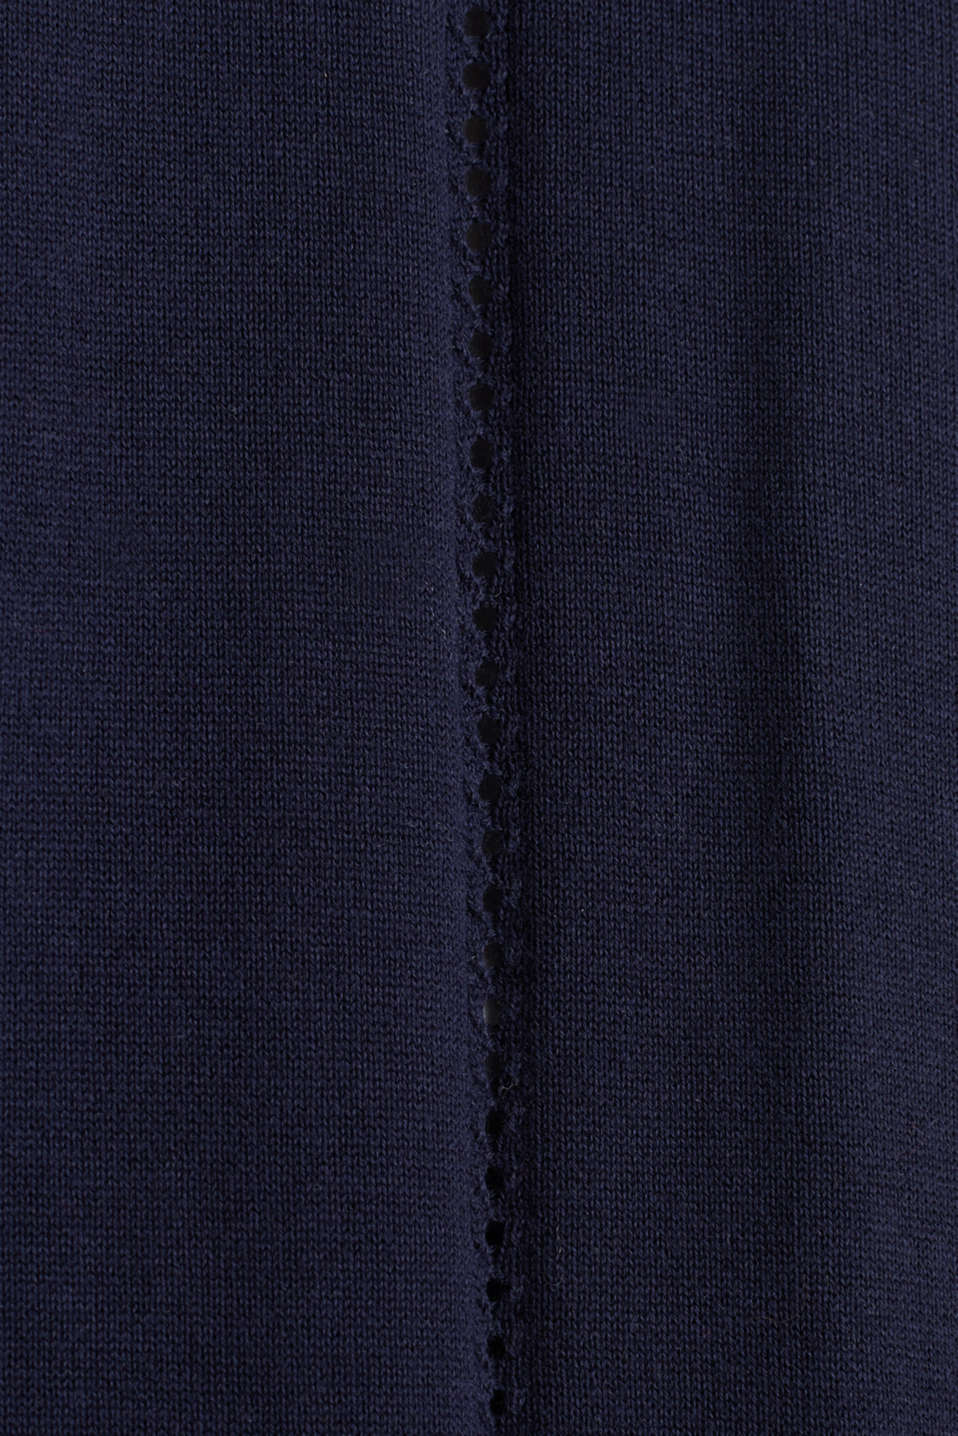 Cardigan with open-work pattern details, NAVY, detail image number 4